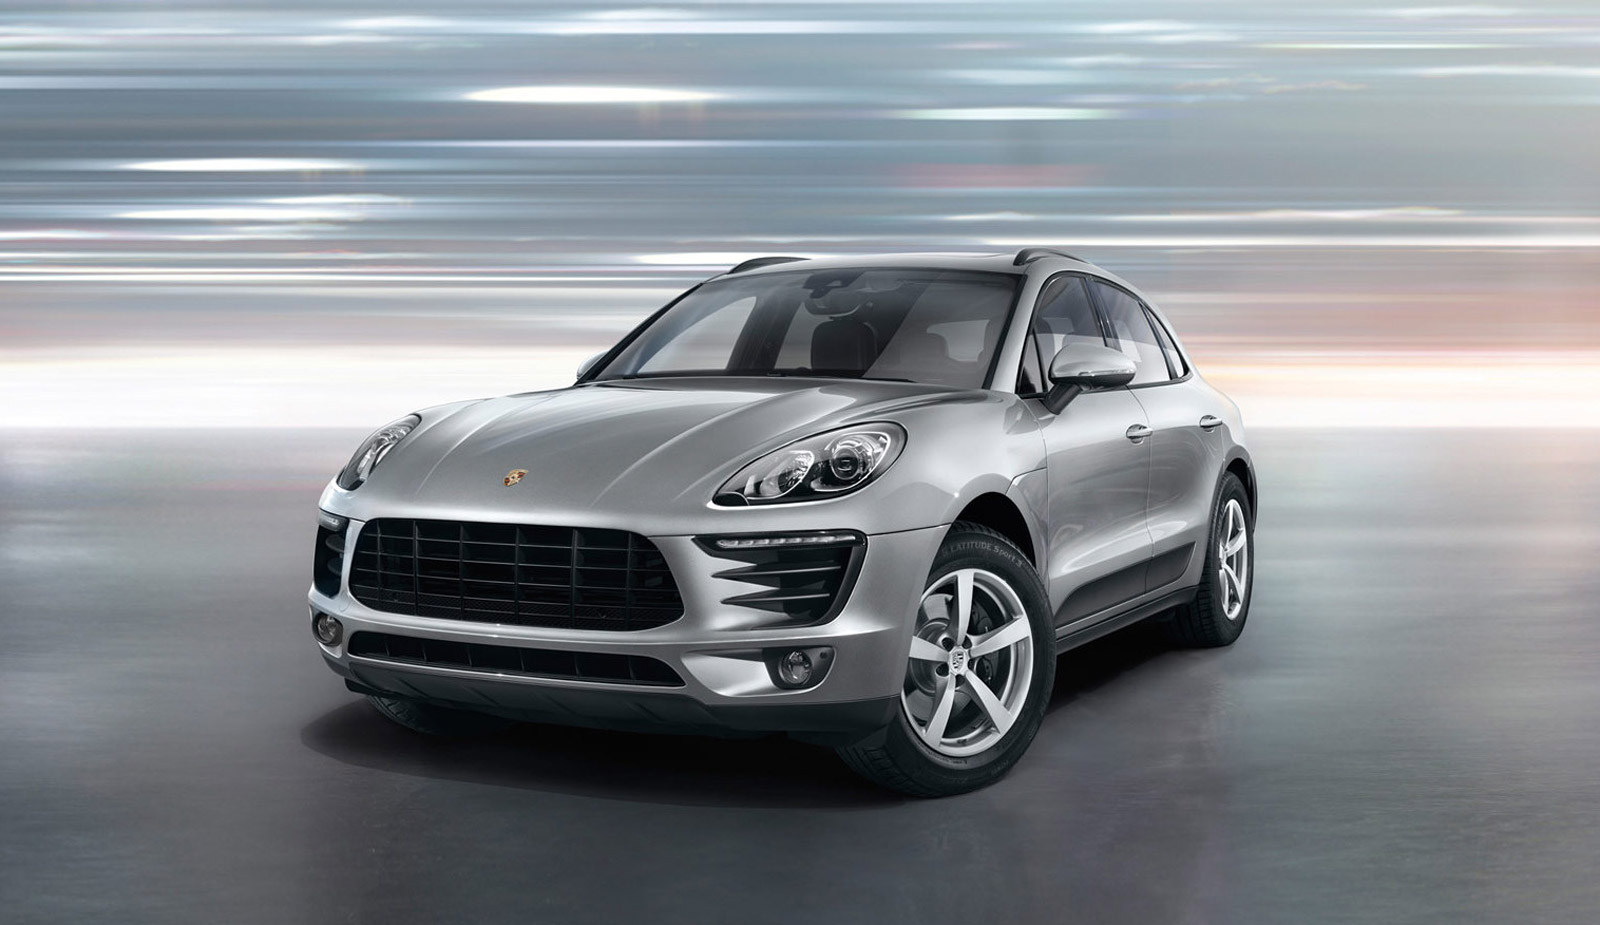 2015 Porsche Macan Review Ratings Specs Prices And